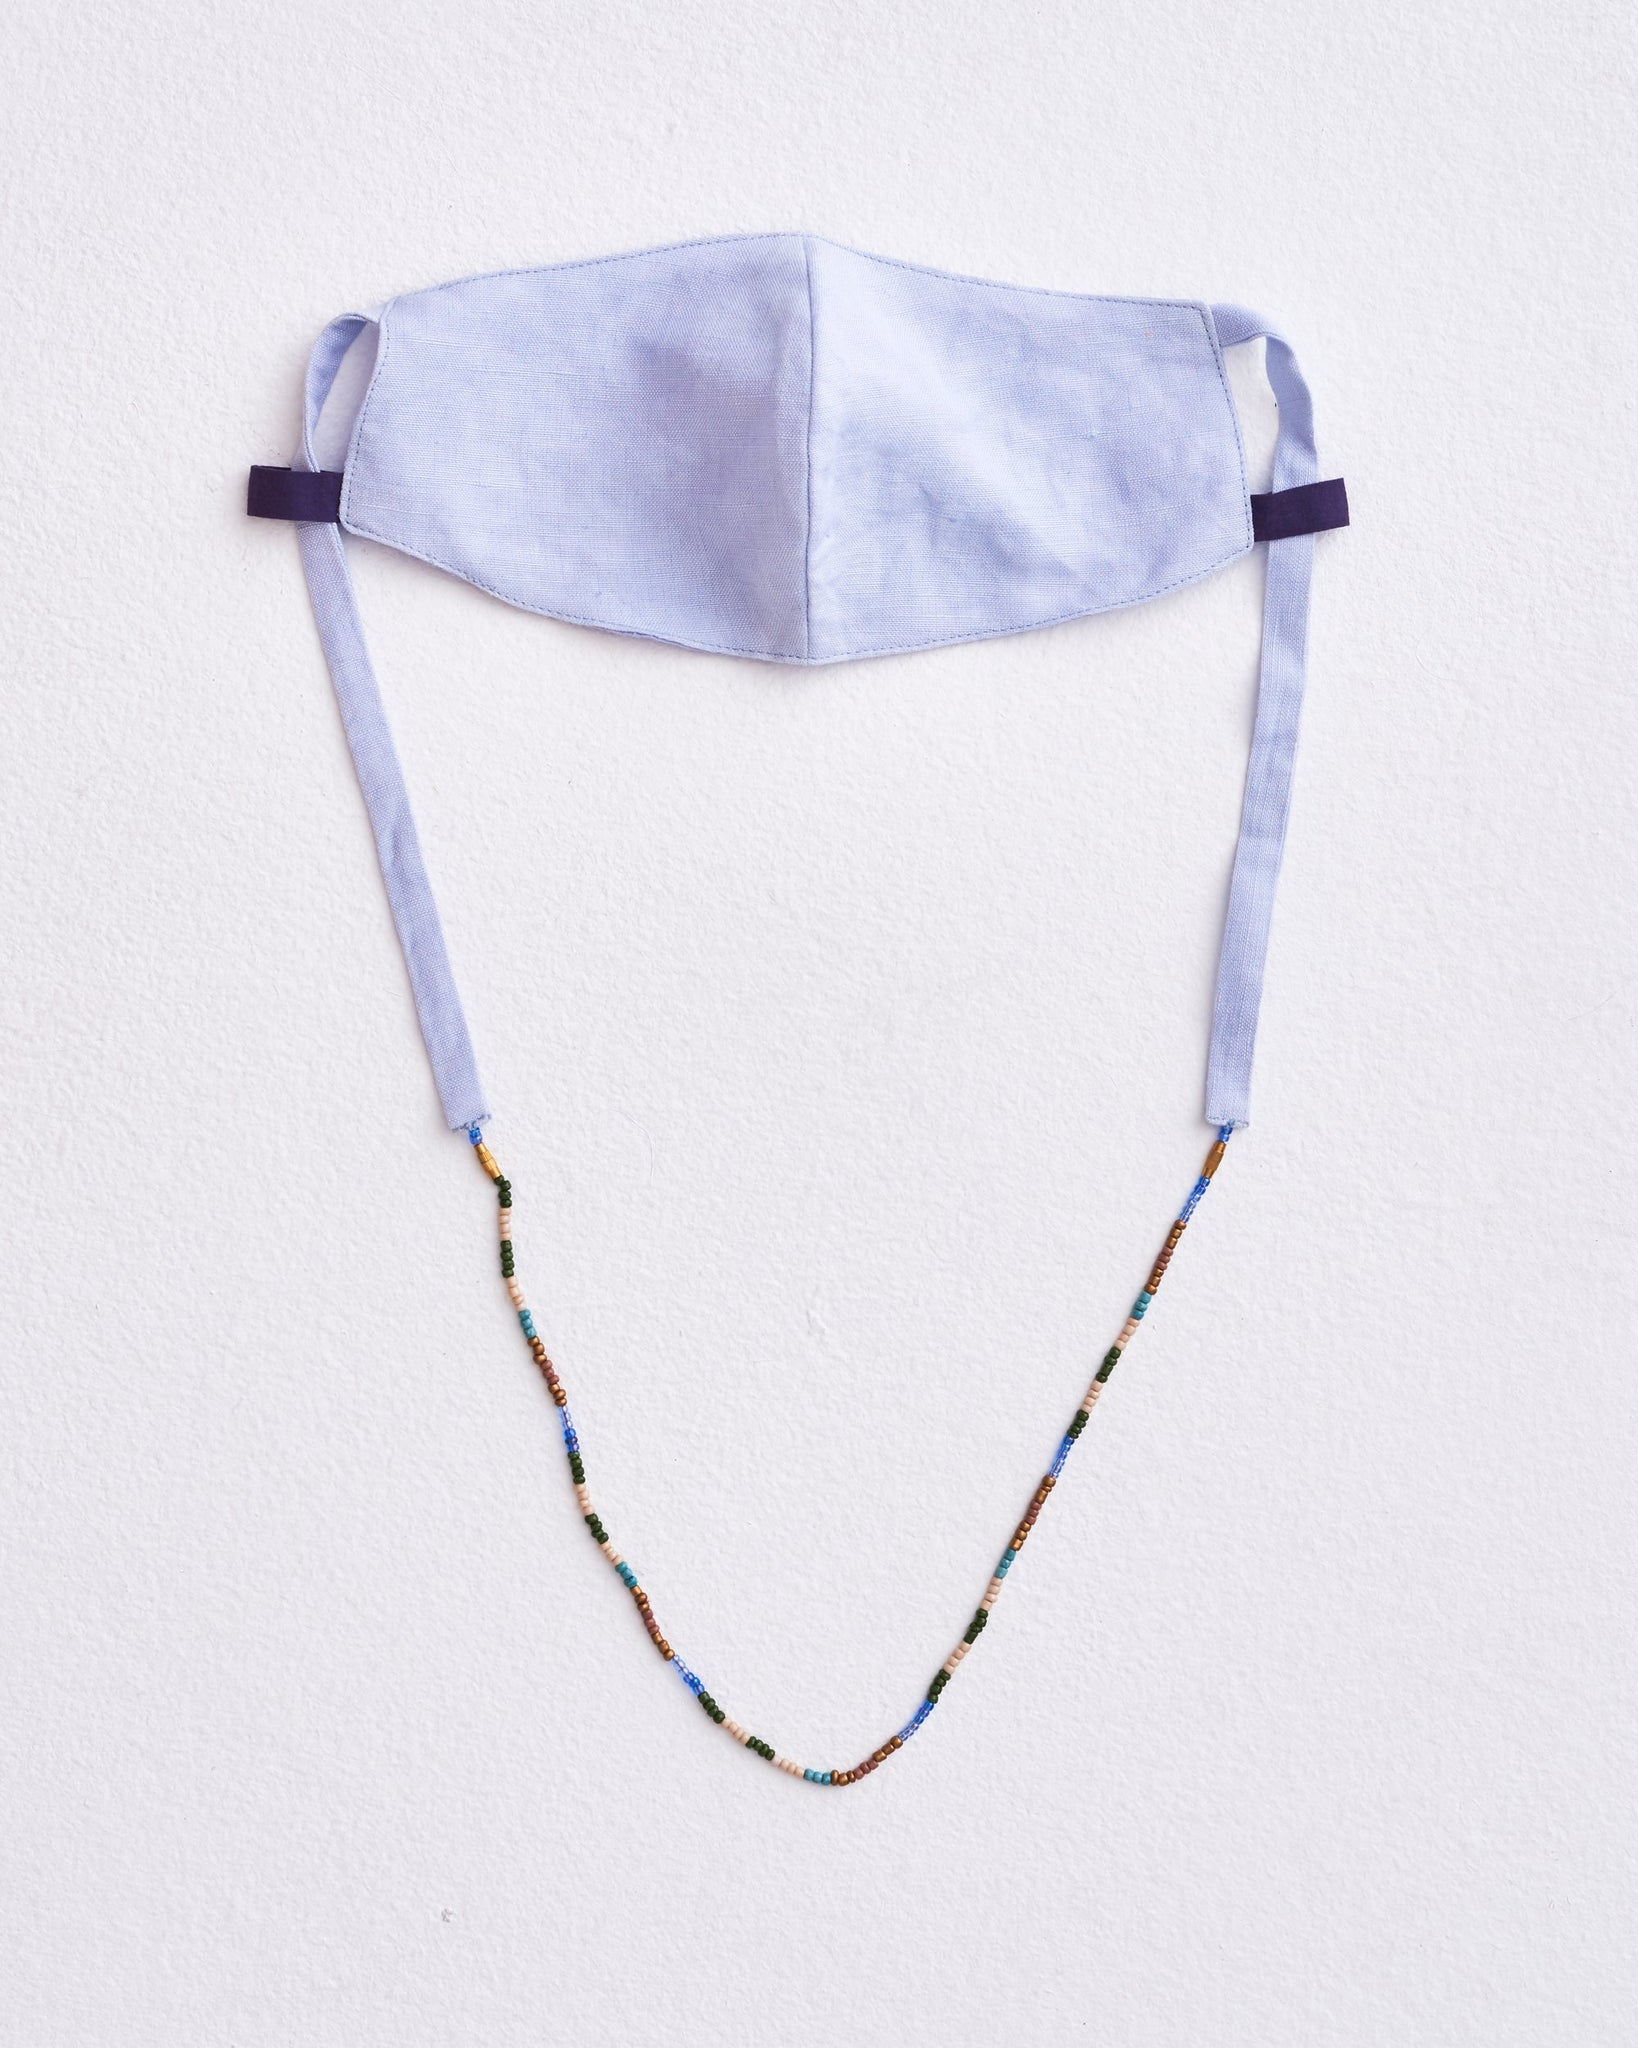 Linen Mask with Beaded Chain Necklace